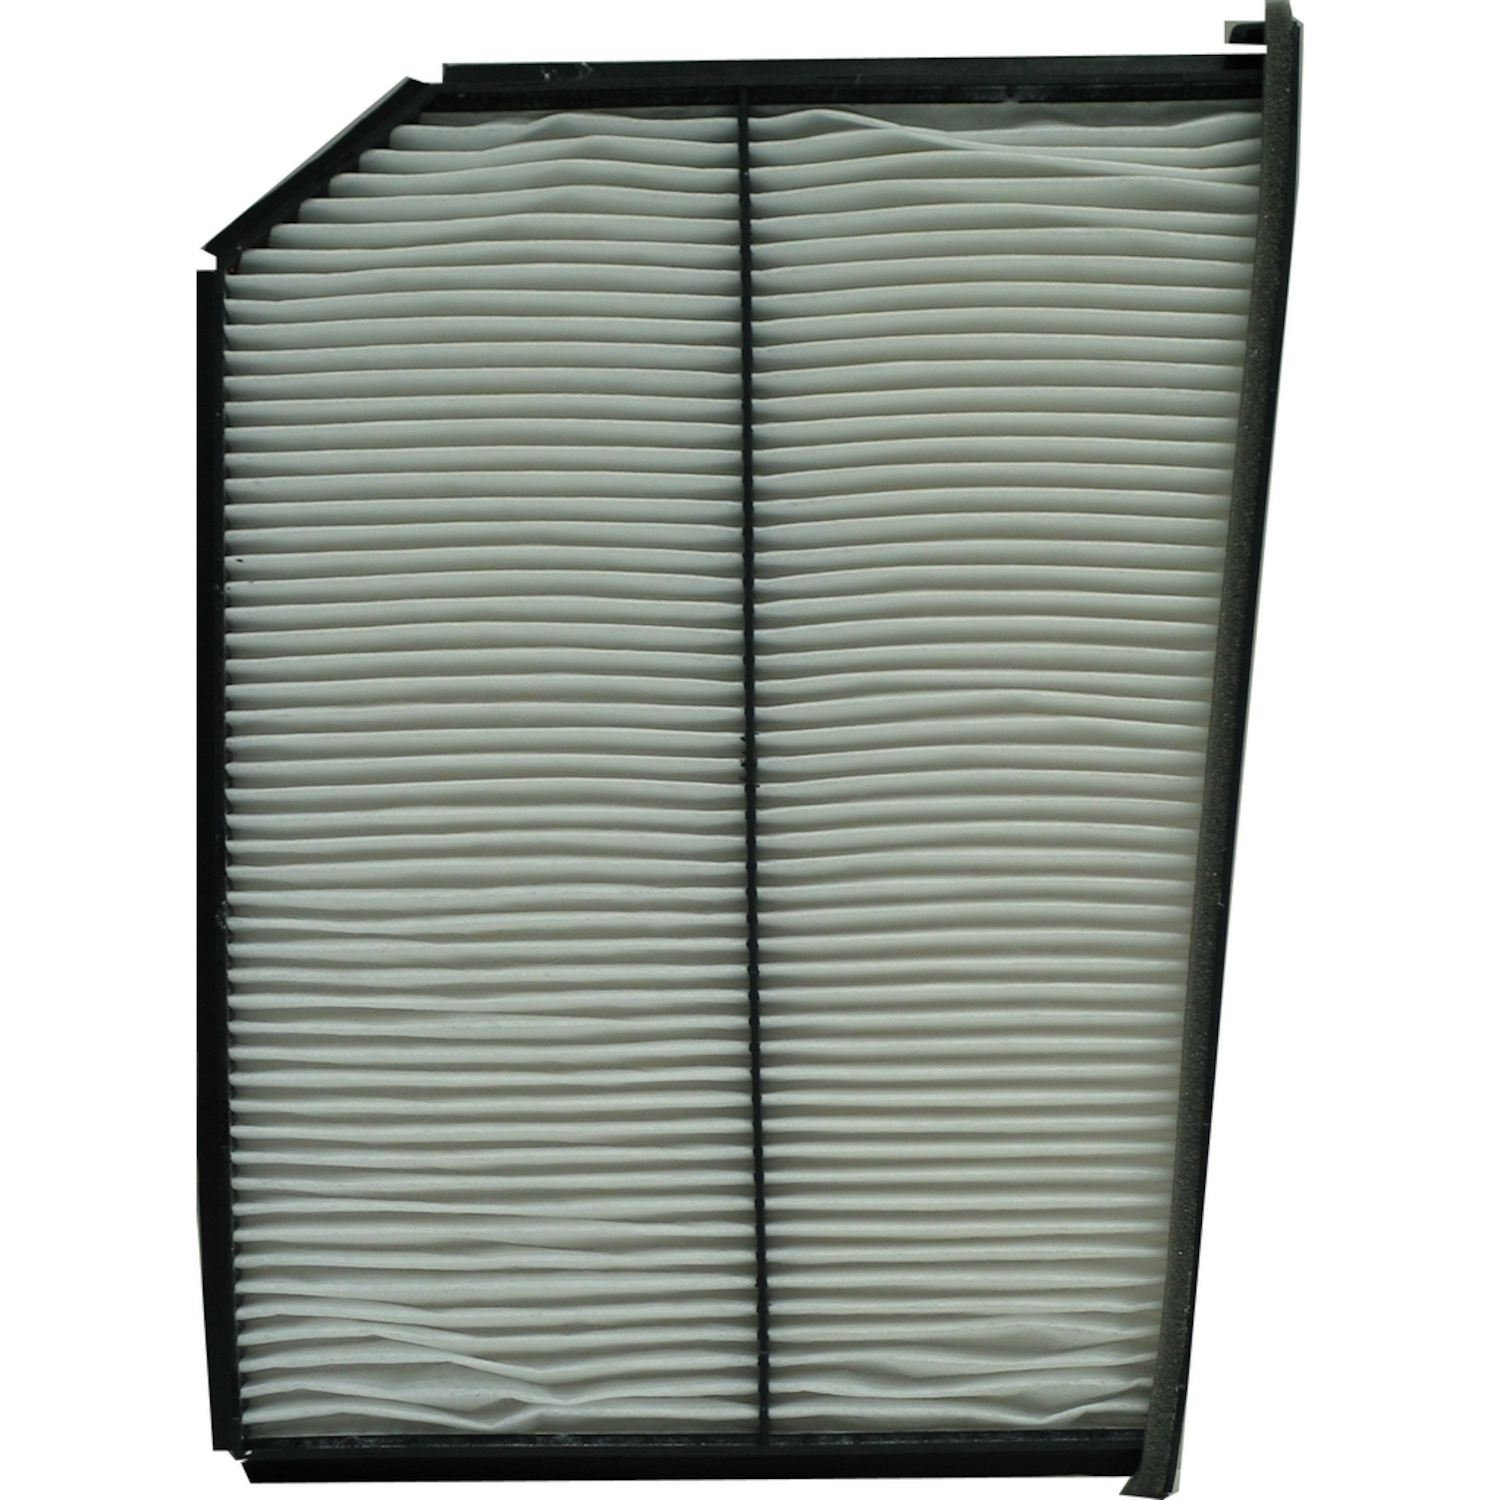 ACDELCO PROFESSIONAL - Cabin Air Filter (Right) - DCC CF2234